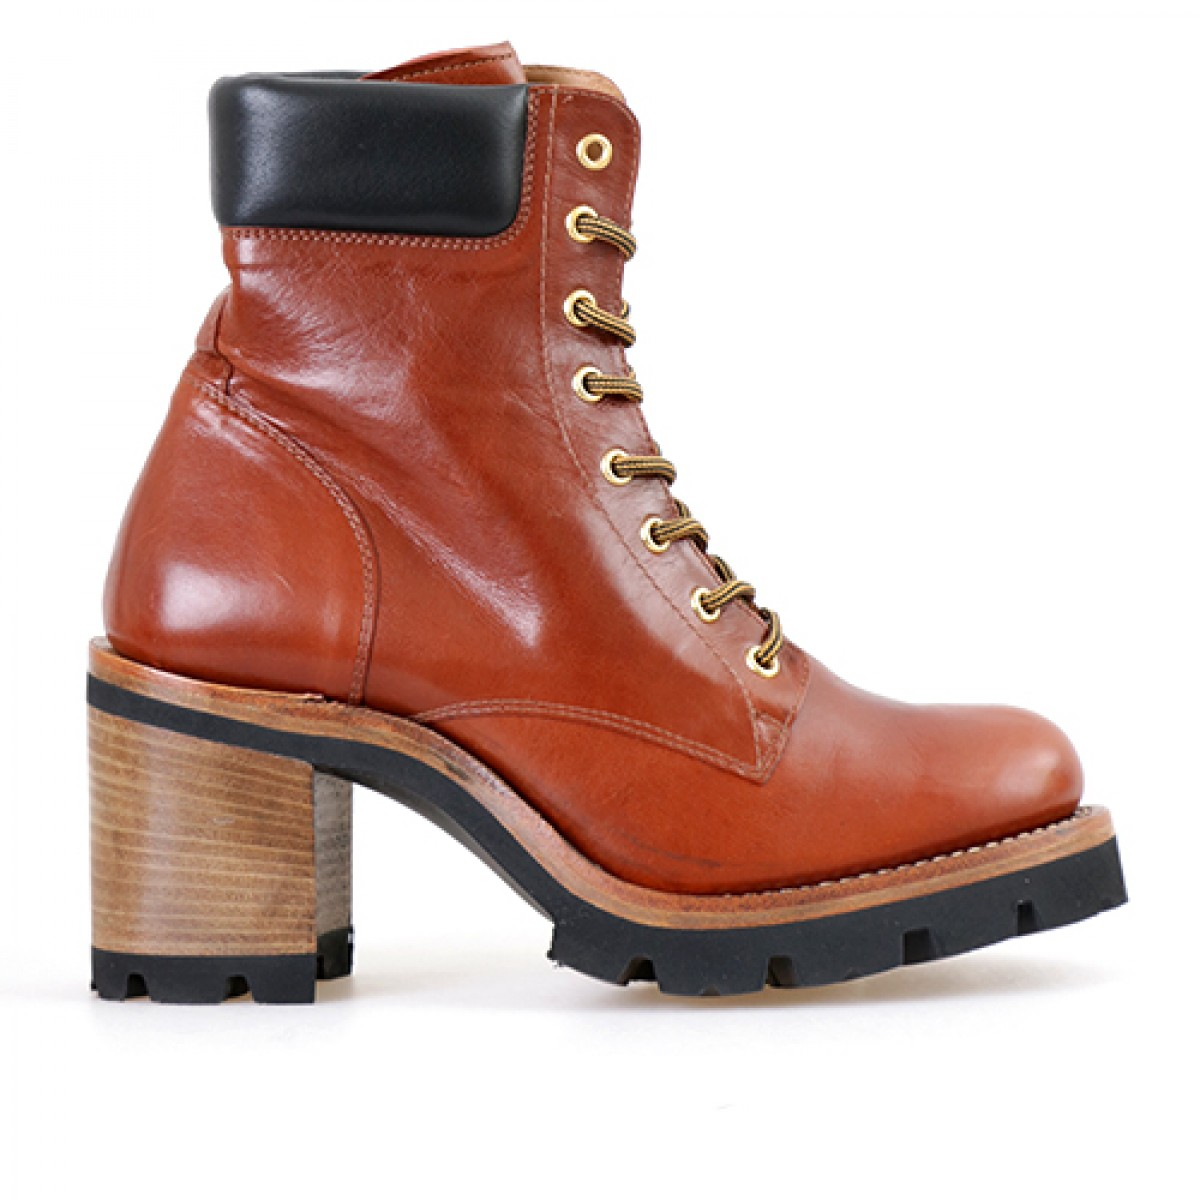 CAPPELLETTI HIGH HEEL MID BOOT